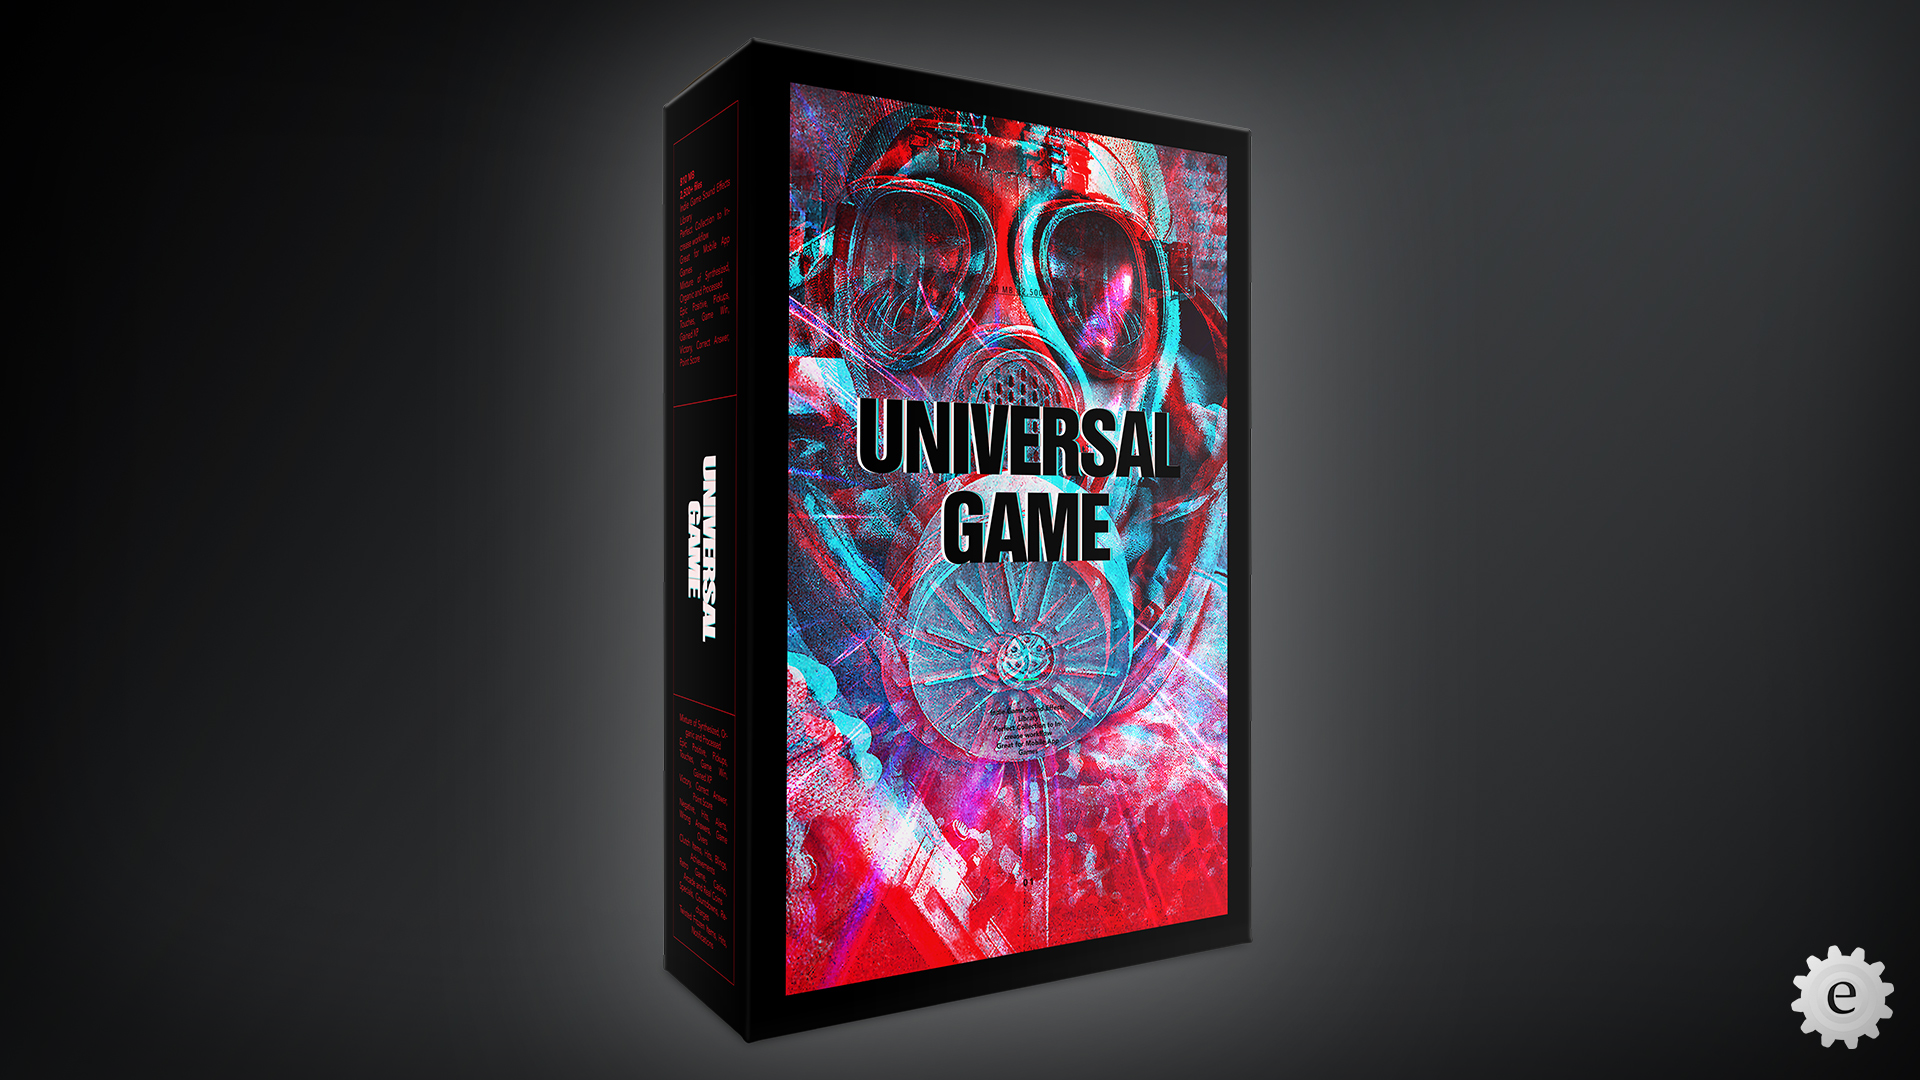 Universal Game by ESM